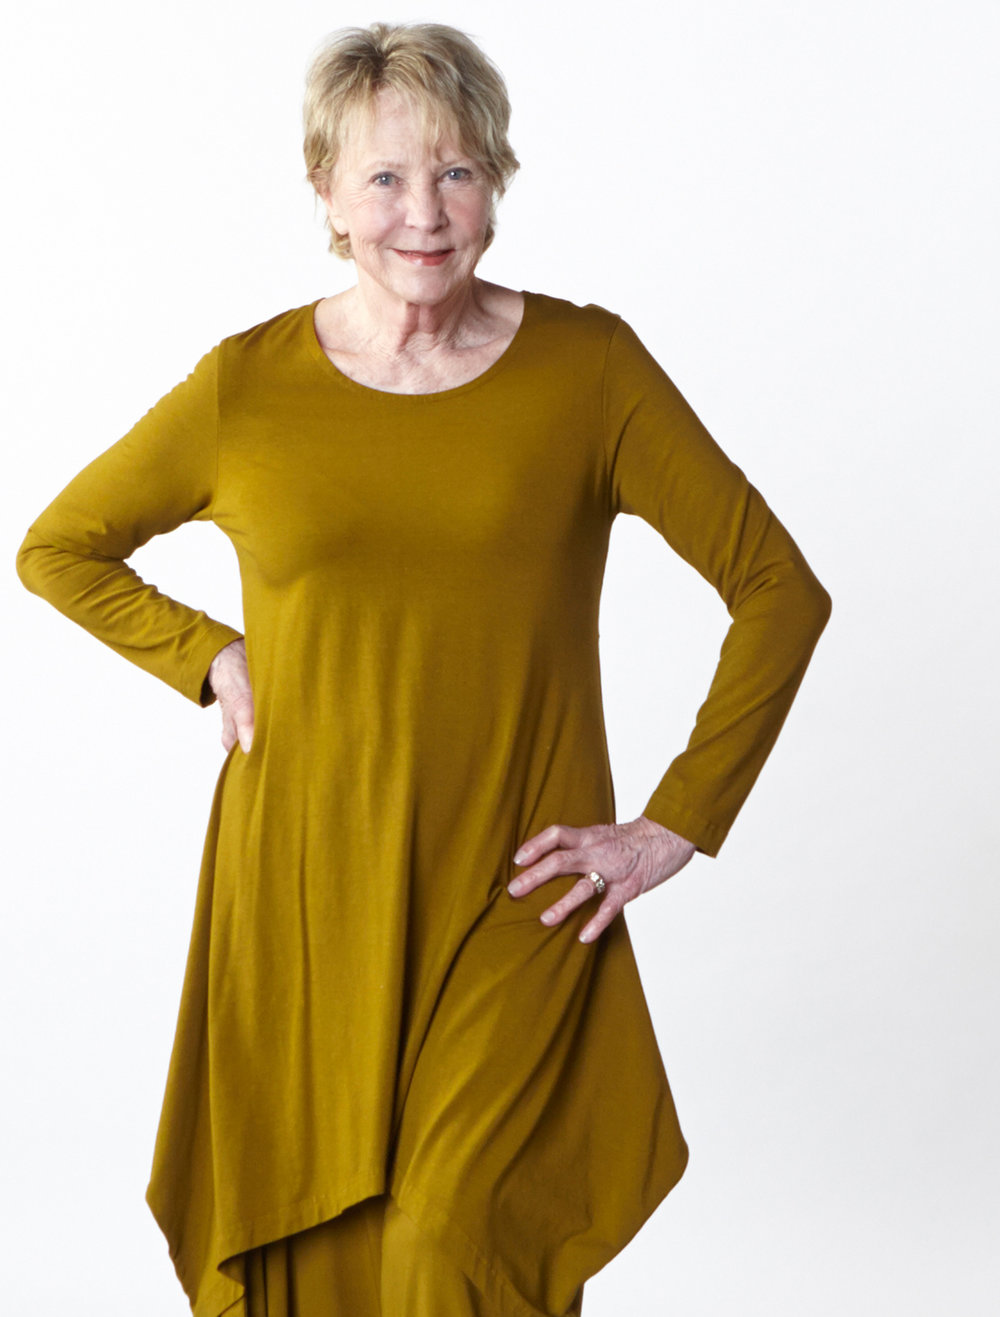 Chase Tunic, Hamish Pant in Trebbiano Organic Bamboo Cotton